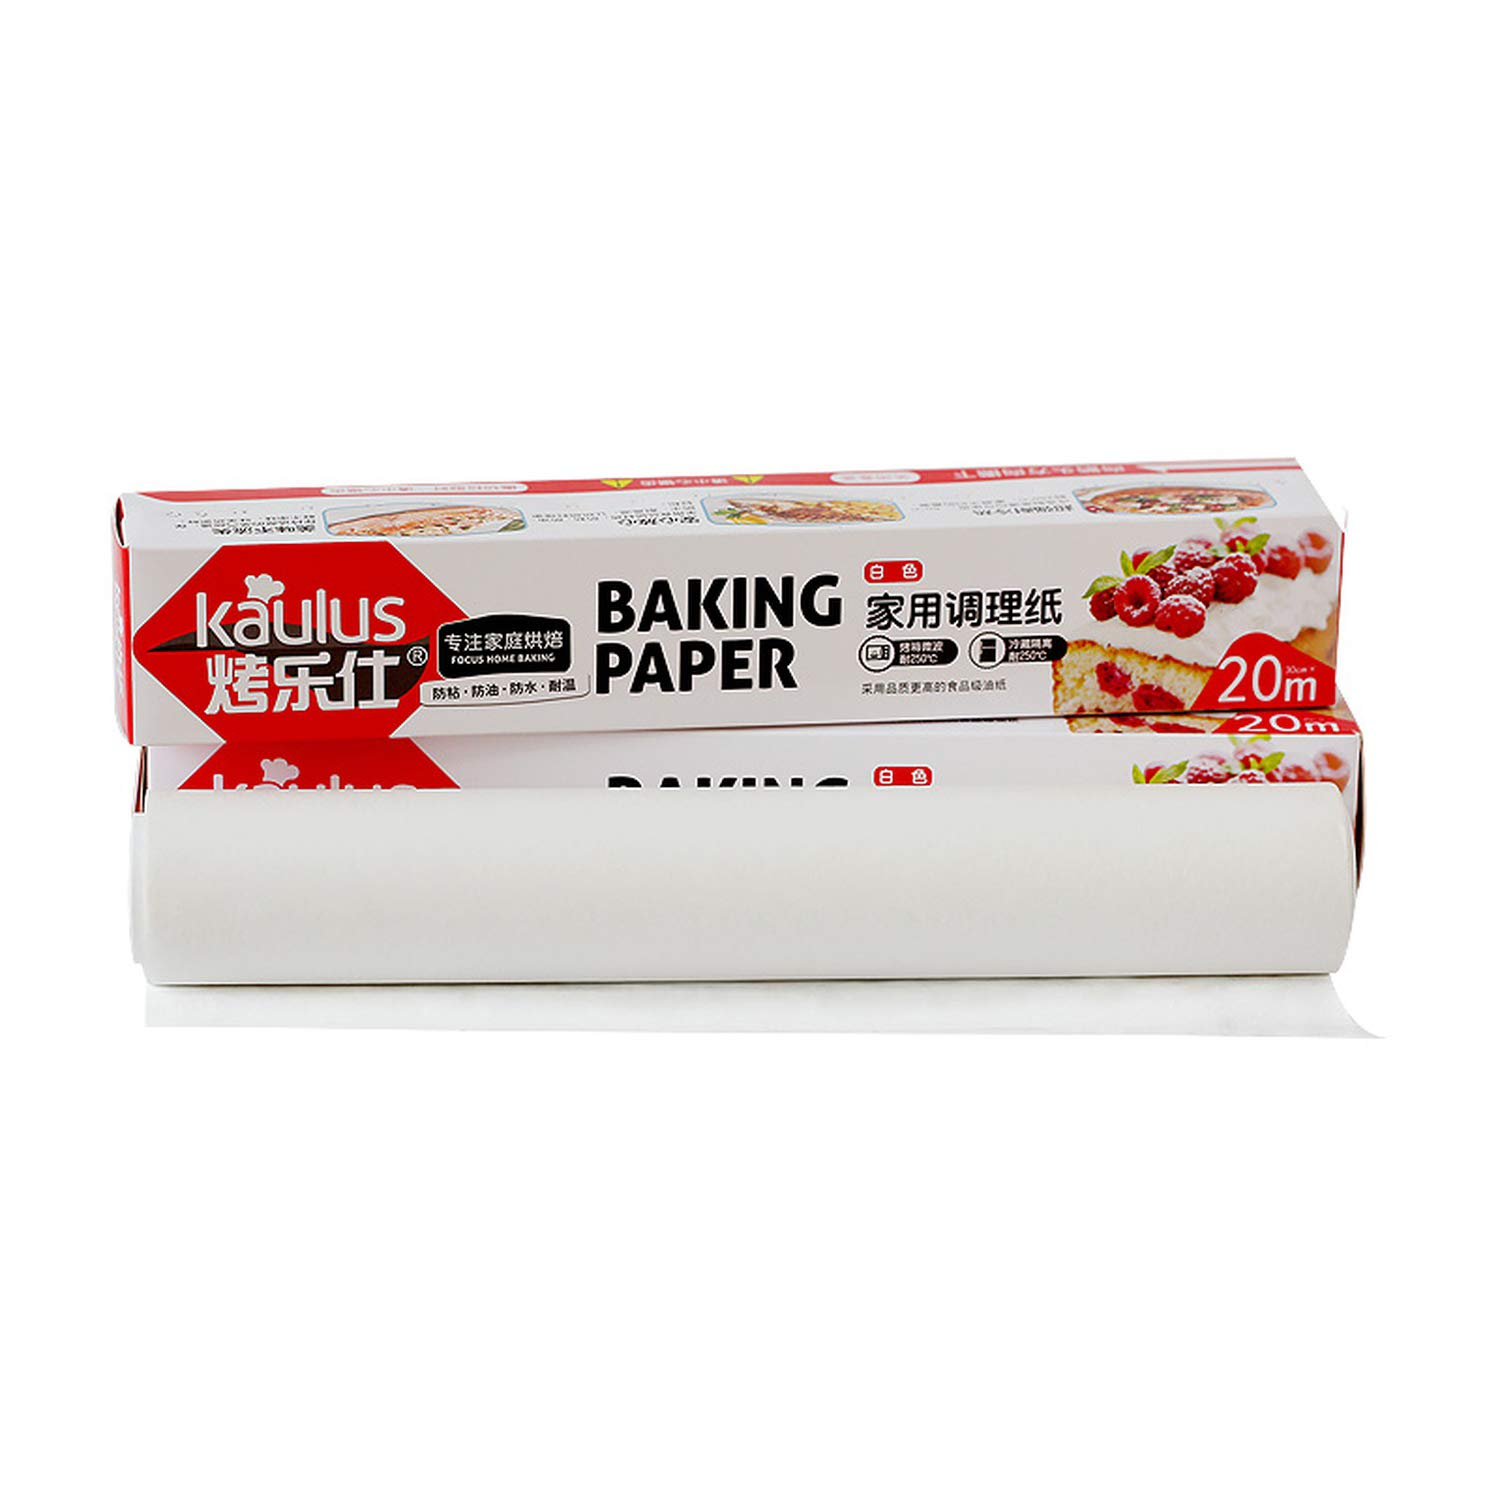 Baking Paper High Temperature Resistance Silicone Bakeware Mat Oil Paper Greaseproof Paper Absorbing Oilpaper,20M by homesDecor